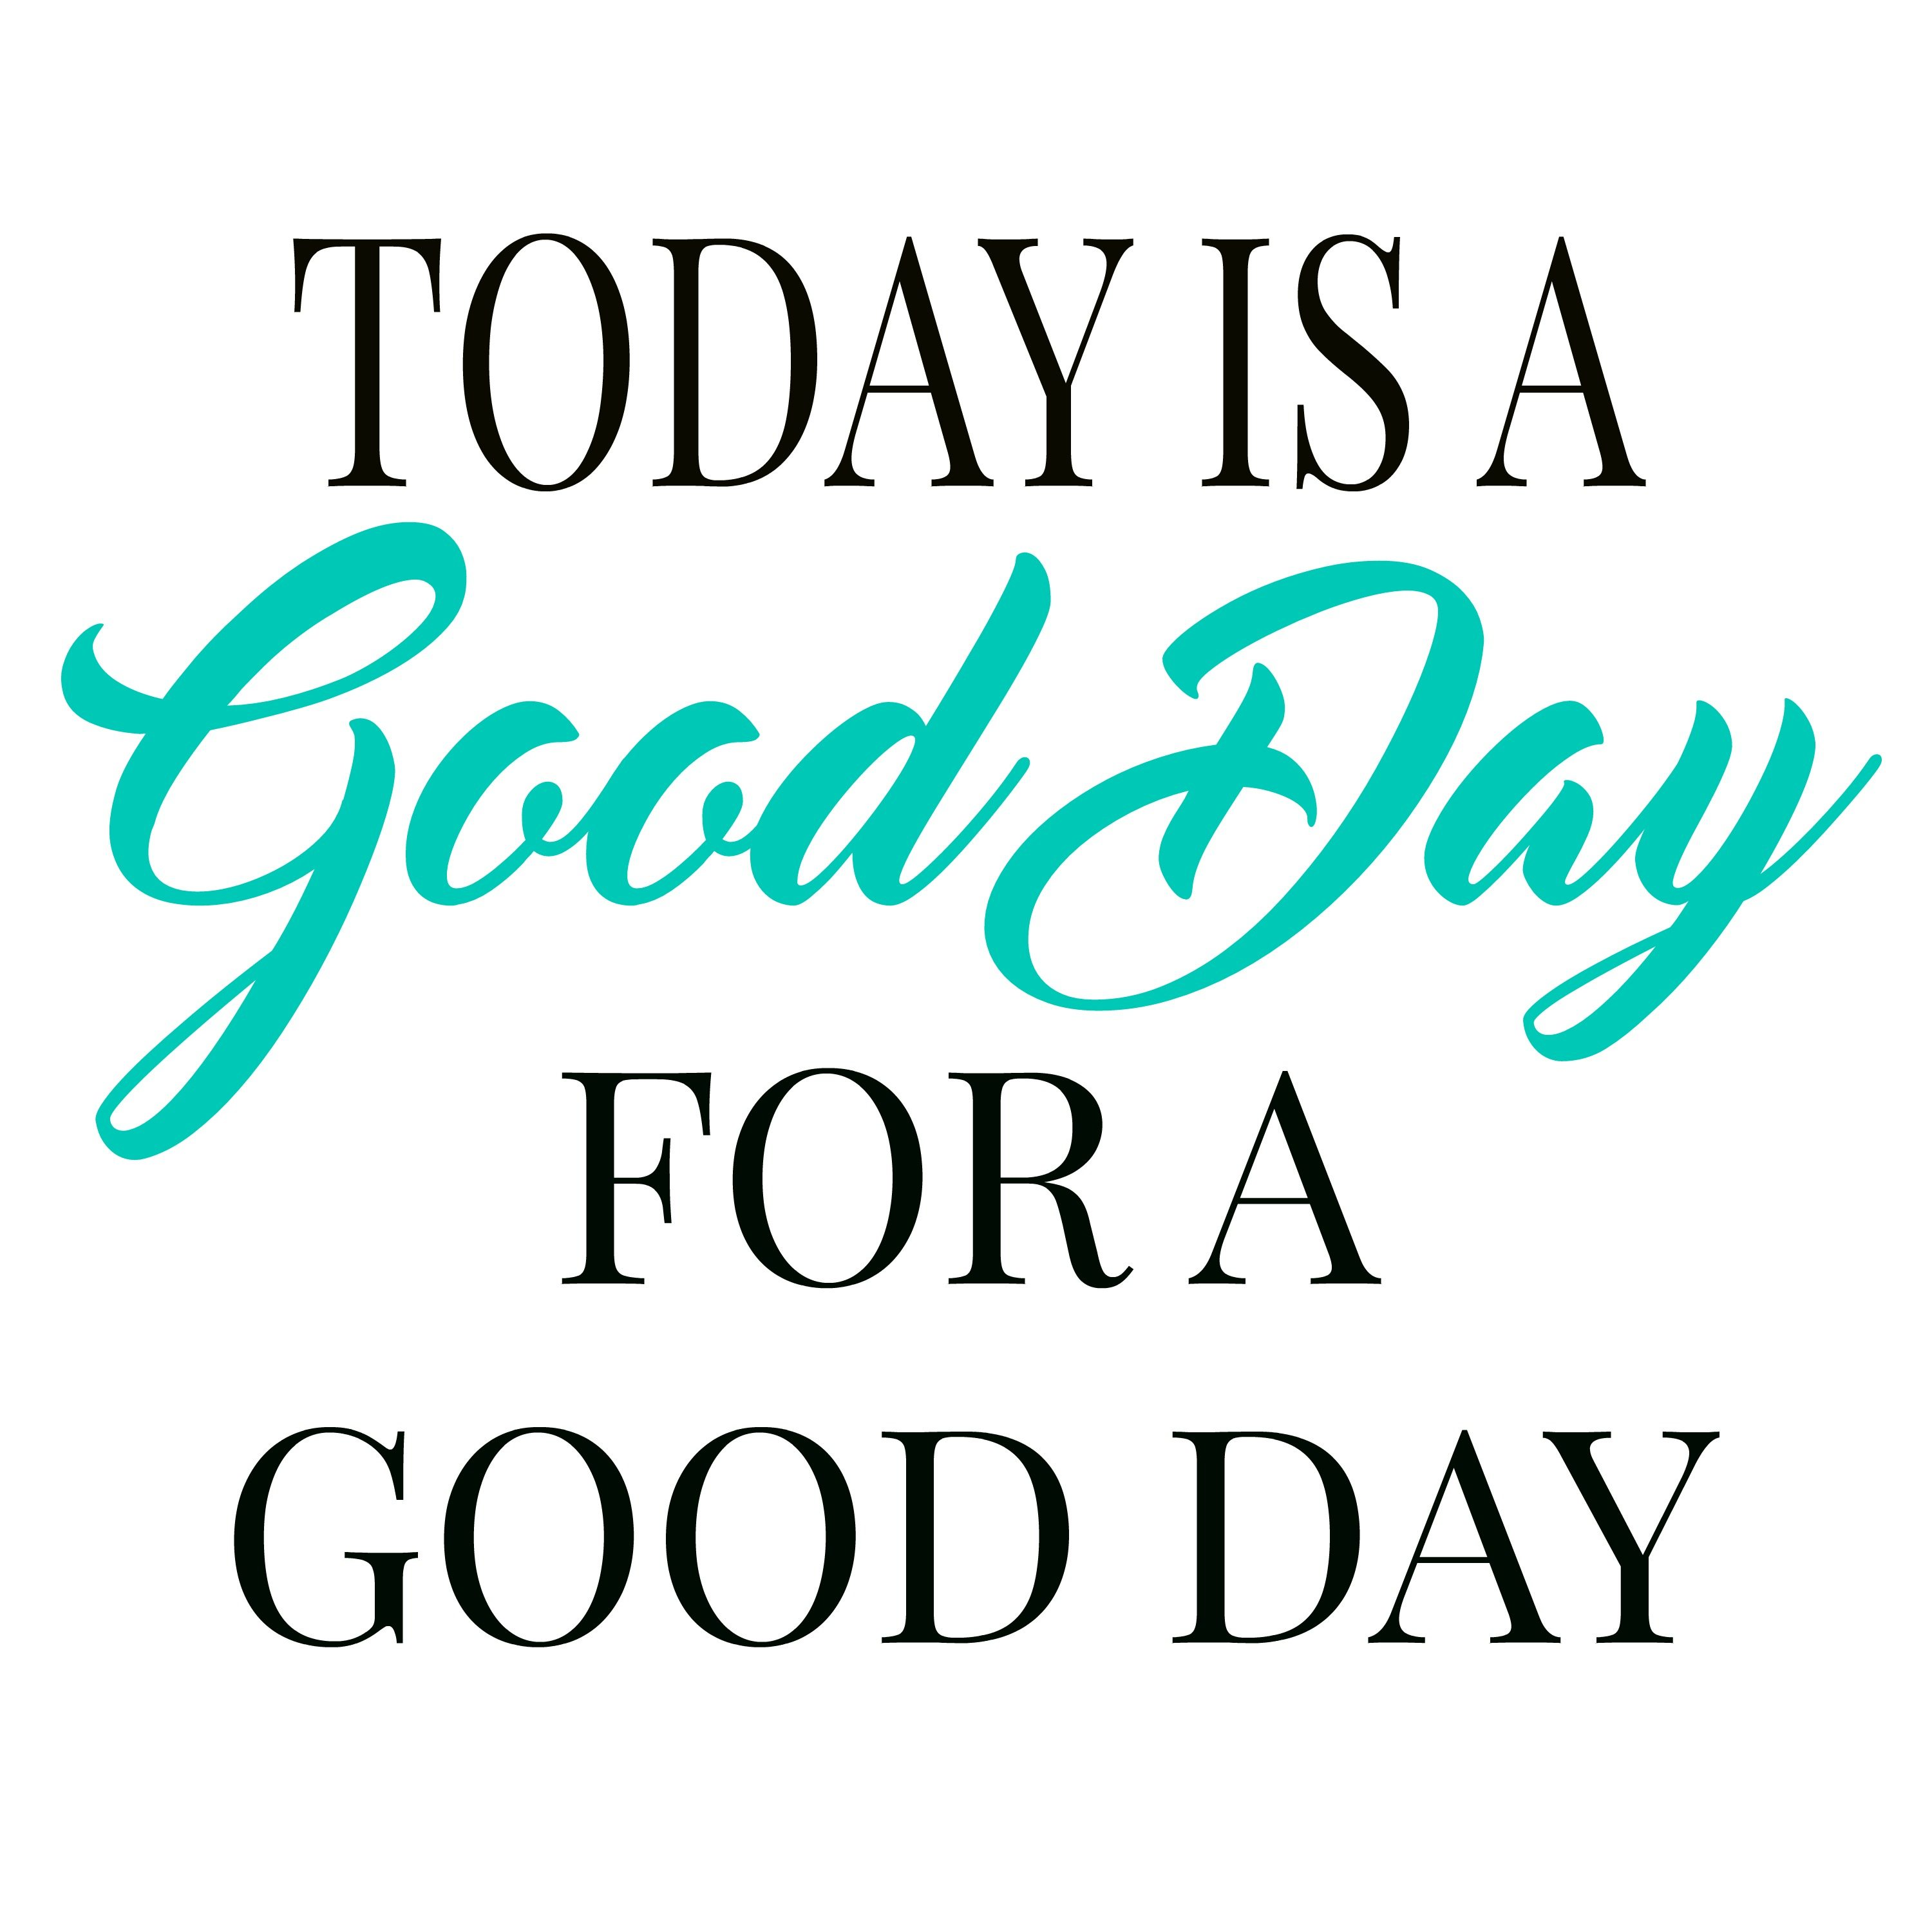 picture about Today is a Good Day for a Good Day Printable named These days is a superior working day printable - Calm House